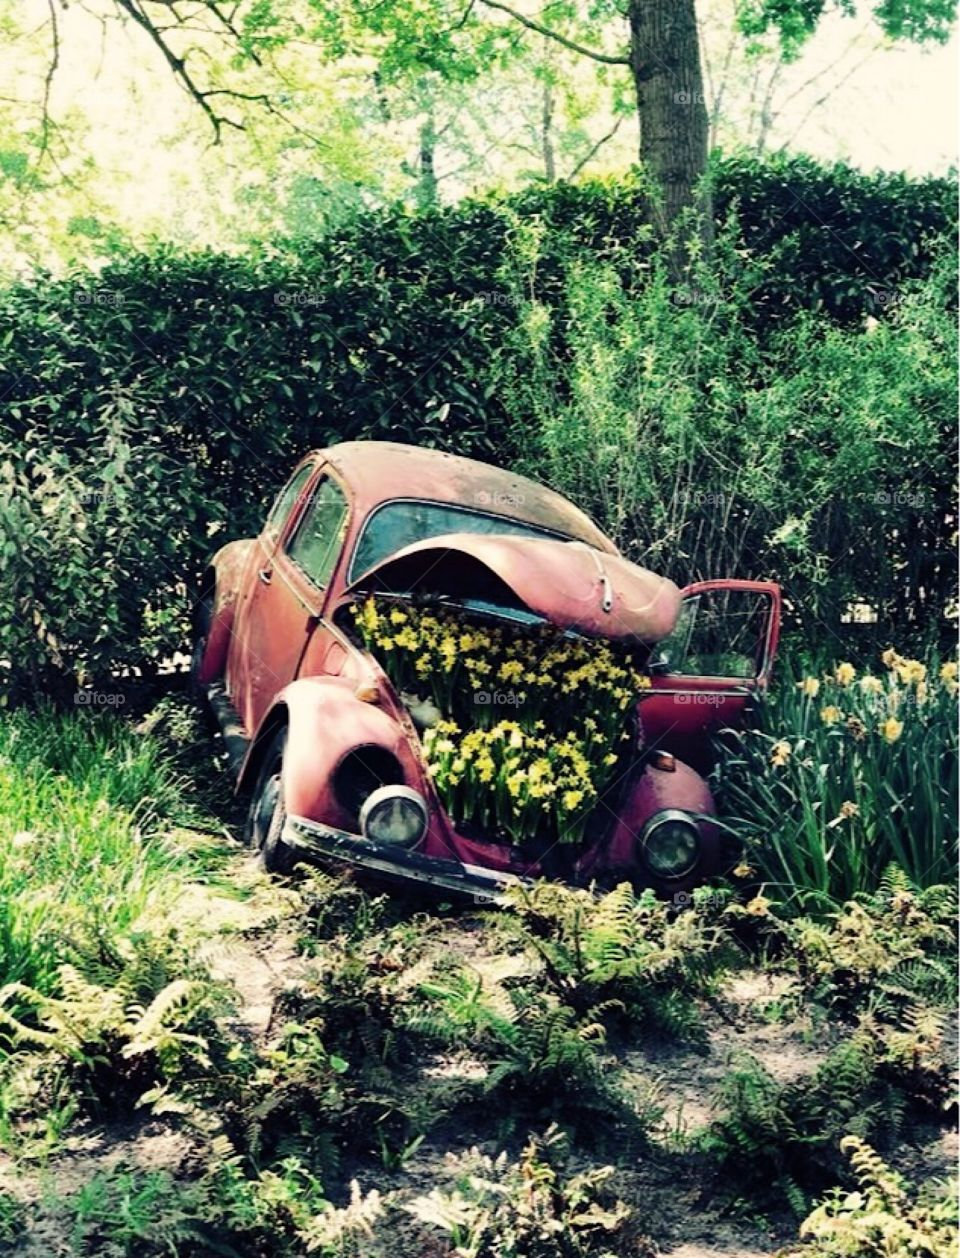 Amsterdam - red Volkswagen Beetle crashed with yellow daffodils